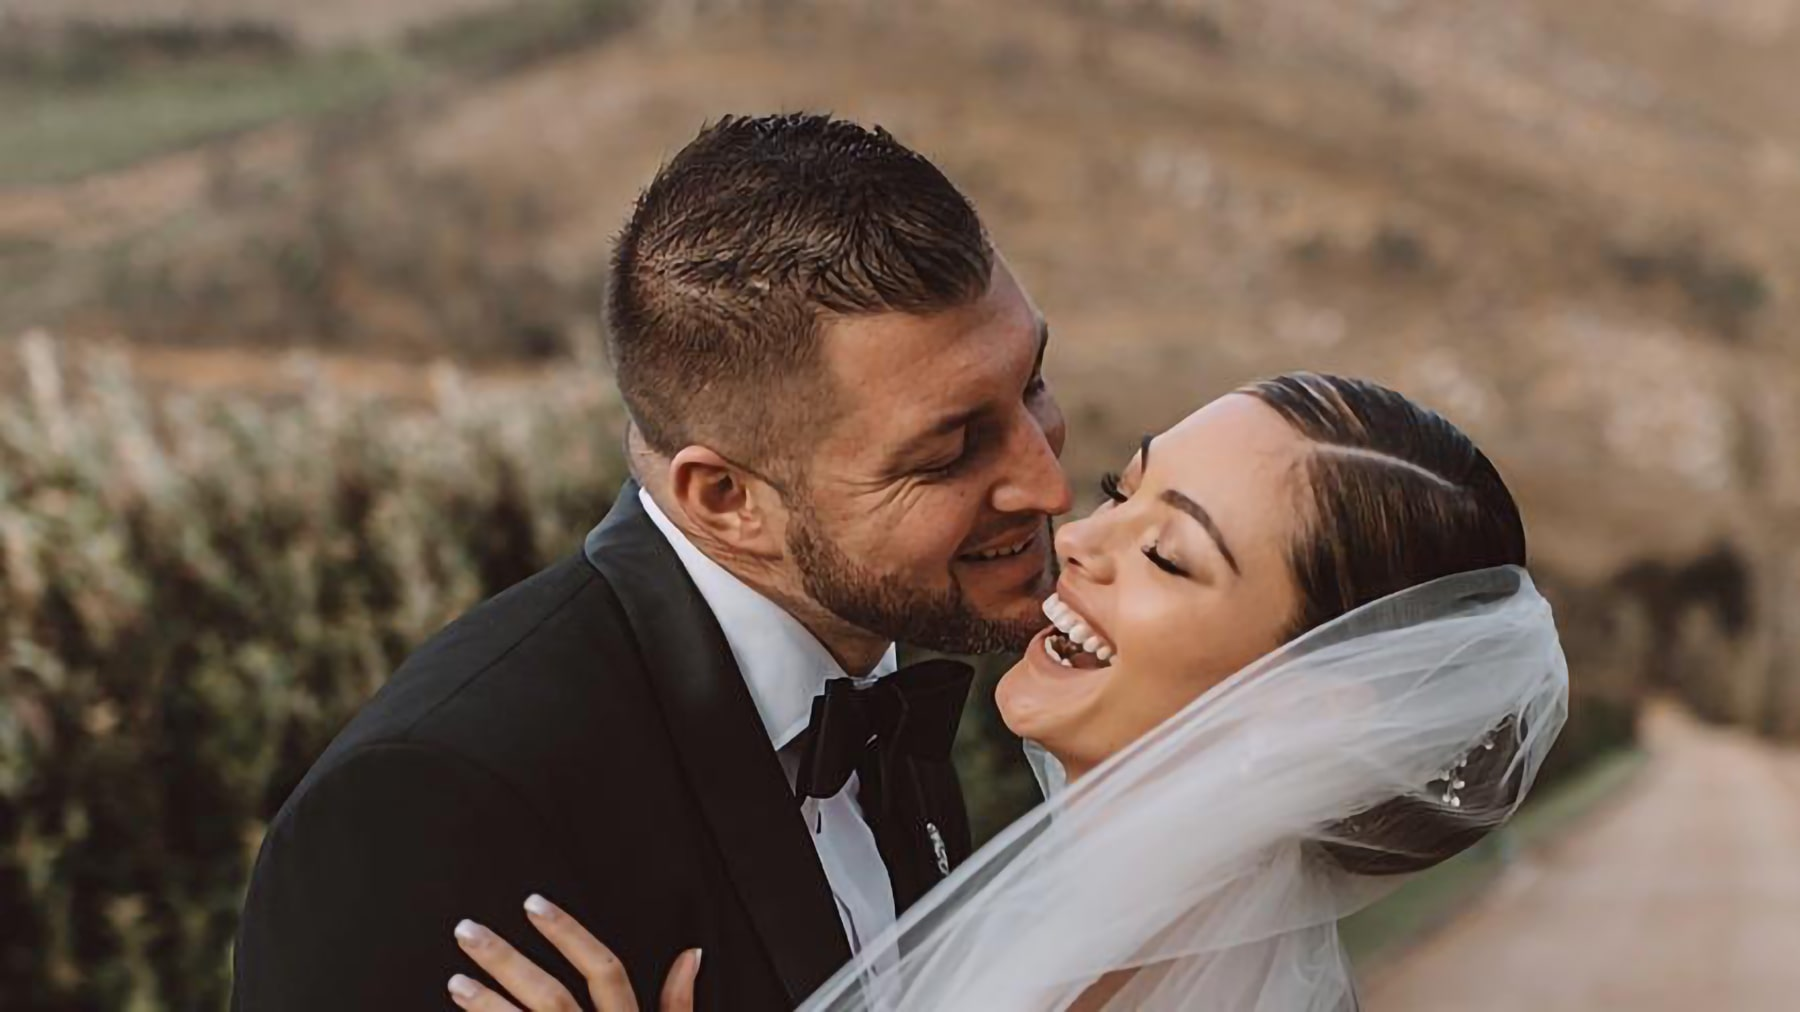 Pro-life Christian NFL QB-turned baseball player Tim Tebow marries Leigh Nel-Peters